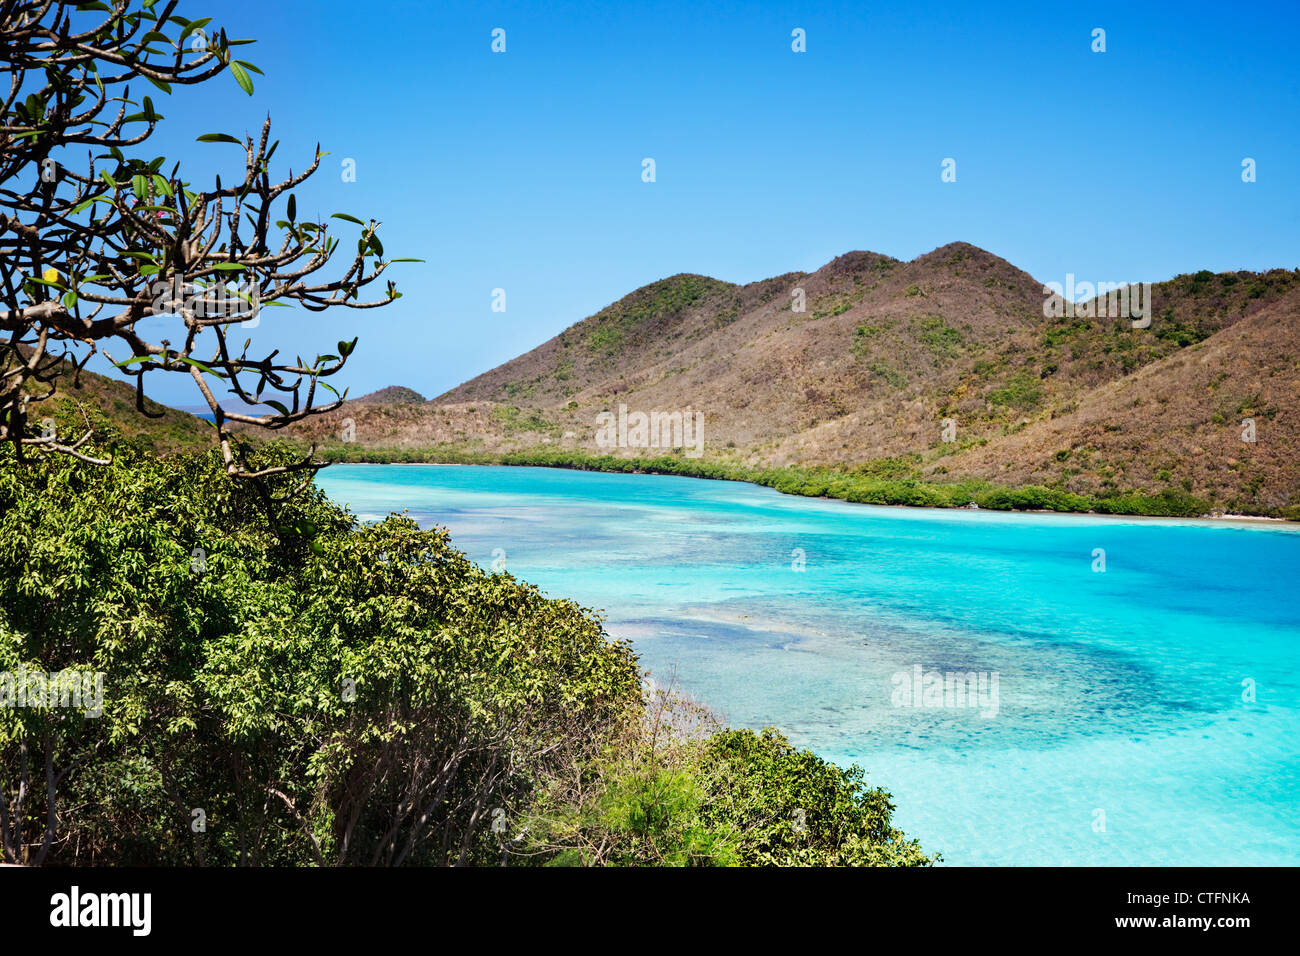 Shallow water at the edge of Leinster Bay - Stock Image